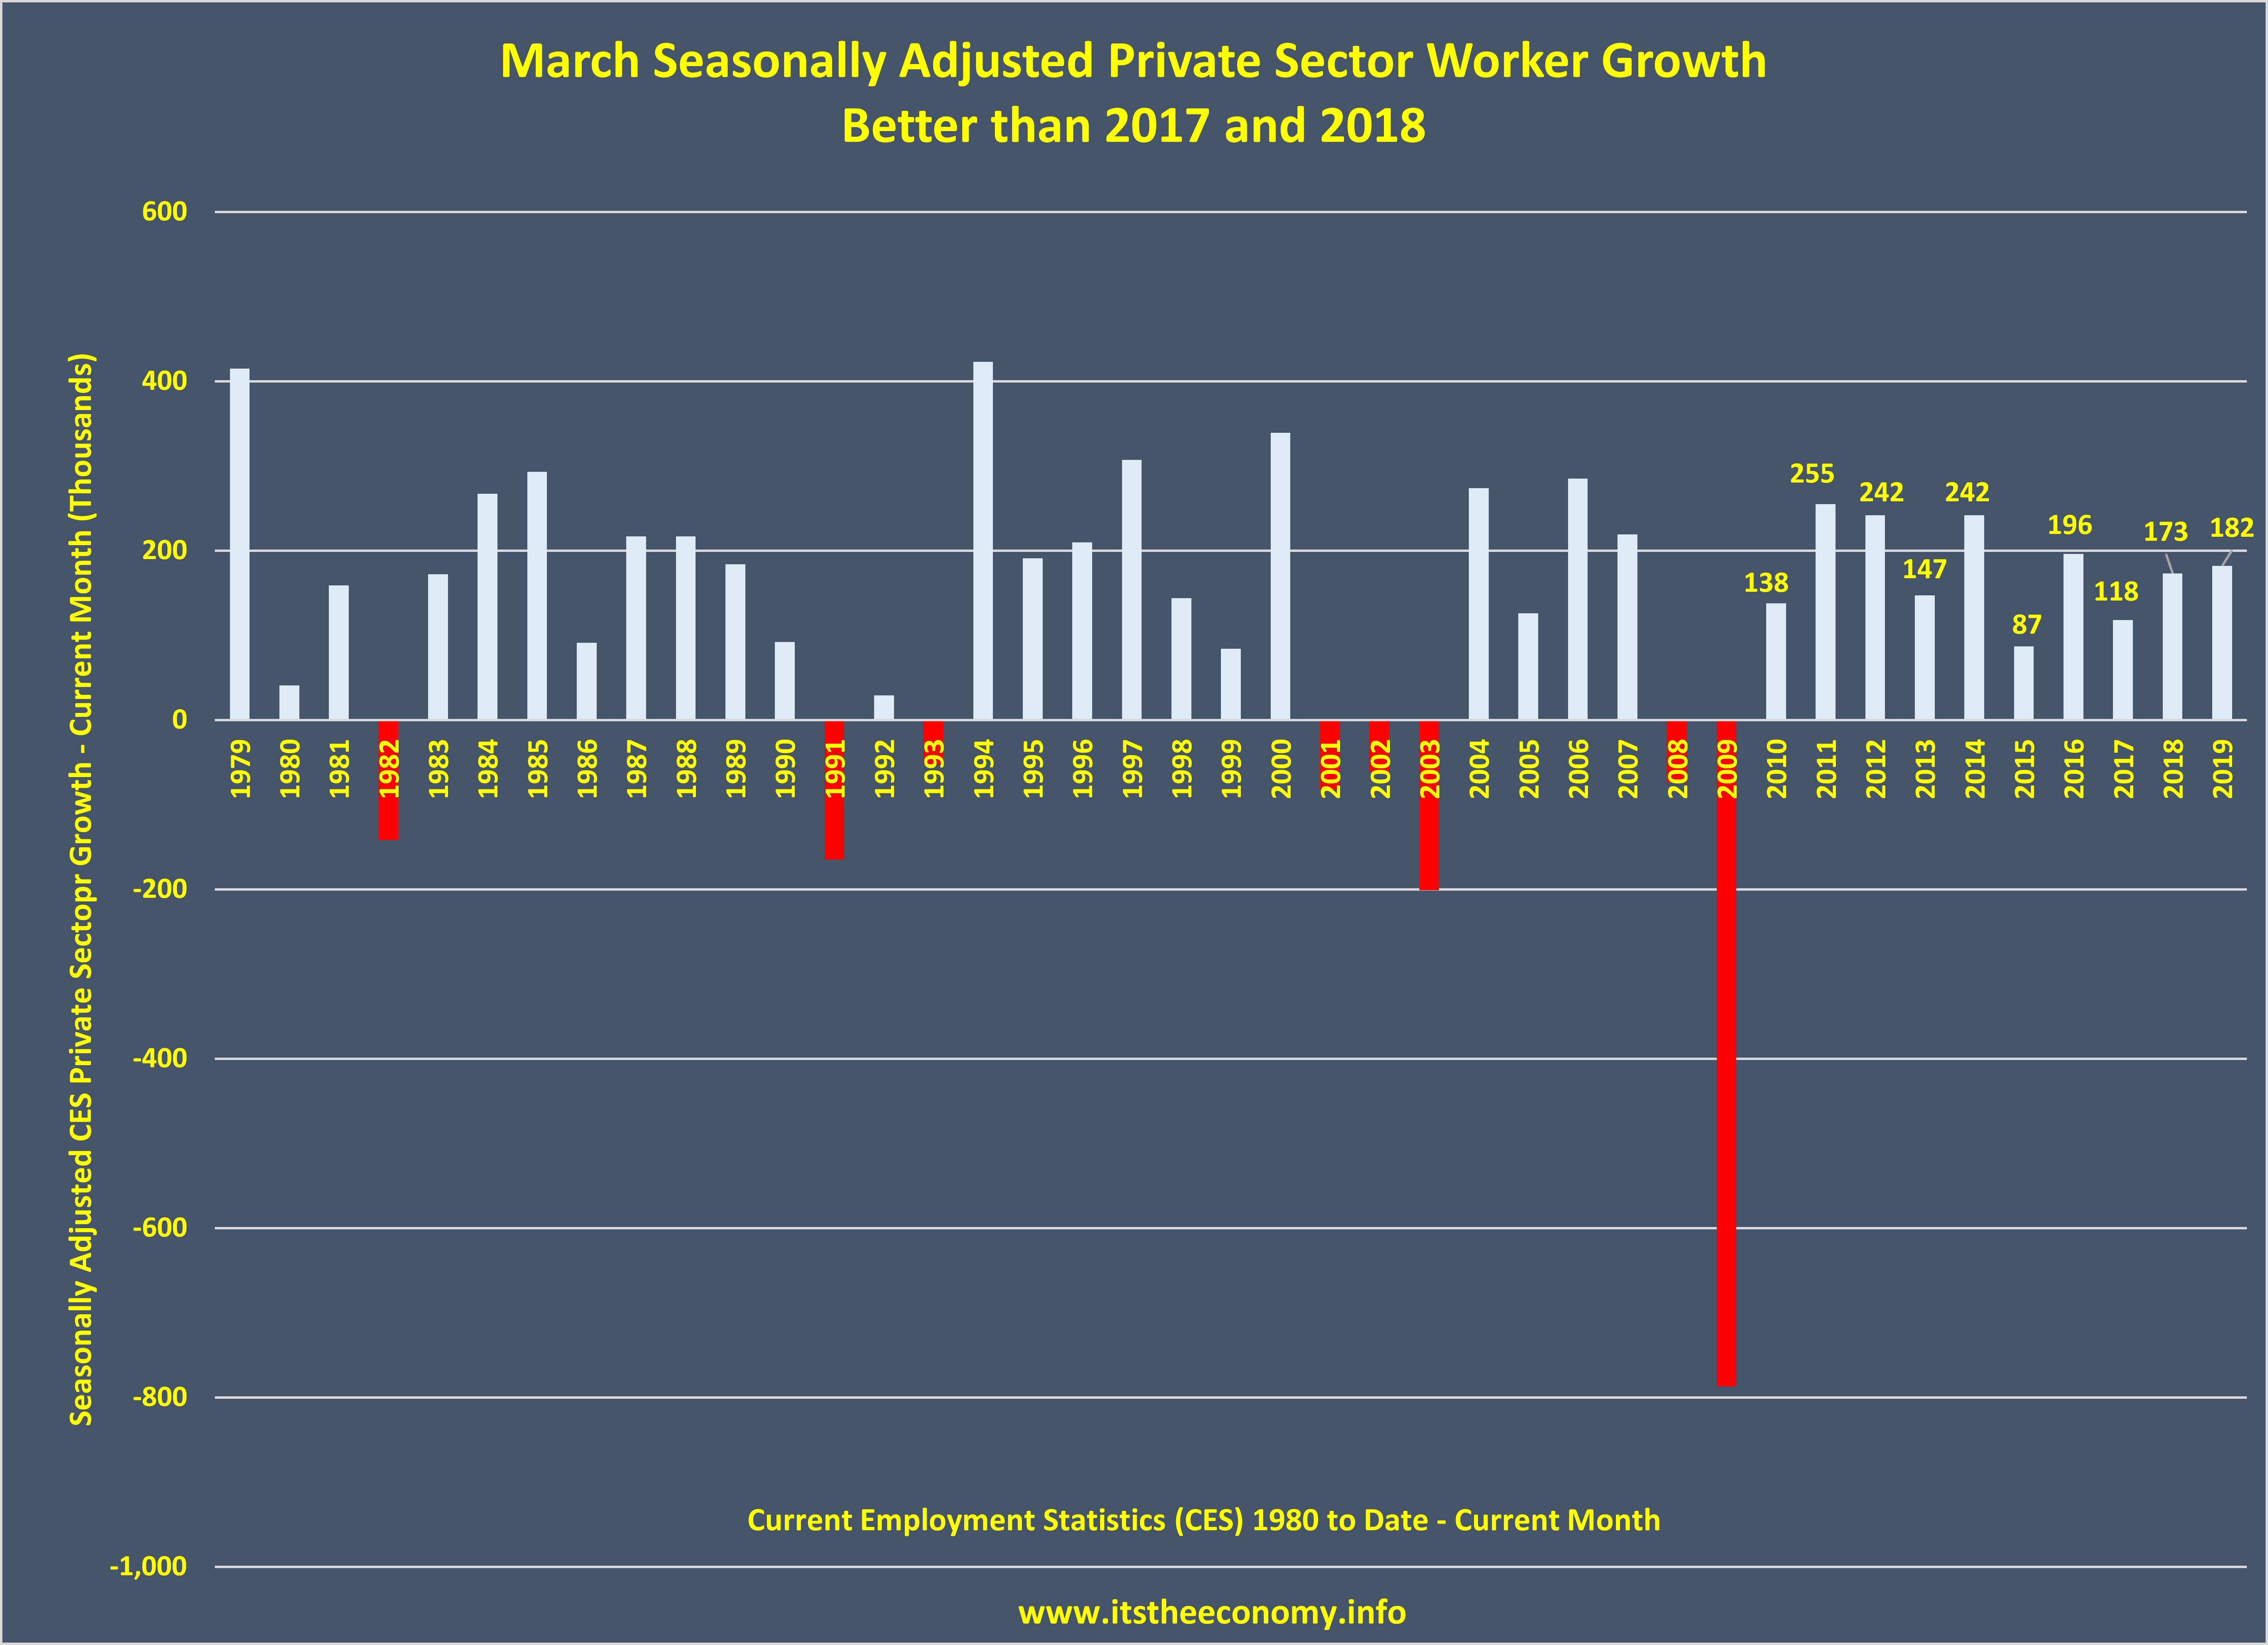 We saw 182,000 seasonally adjusted private sector workers join the workforce this March. This is more than we saw join the econmy during March 2017 and March 2018. This is also slightly fewer than the number of seasonally adjusted workers that joined the workfroce dur March 2016.